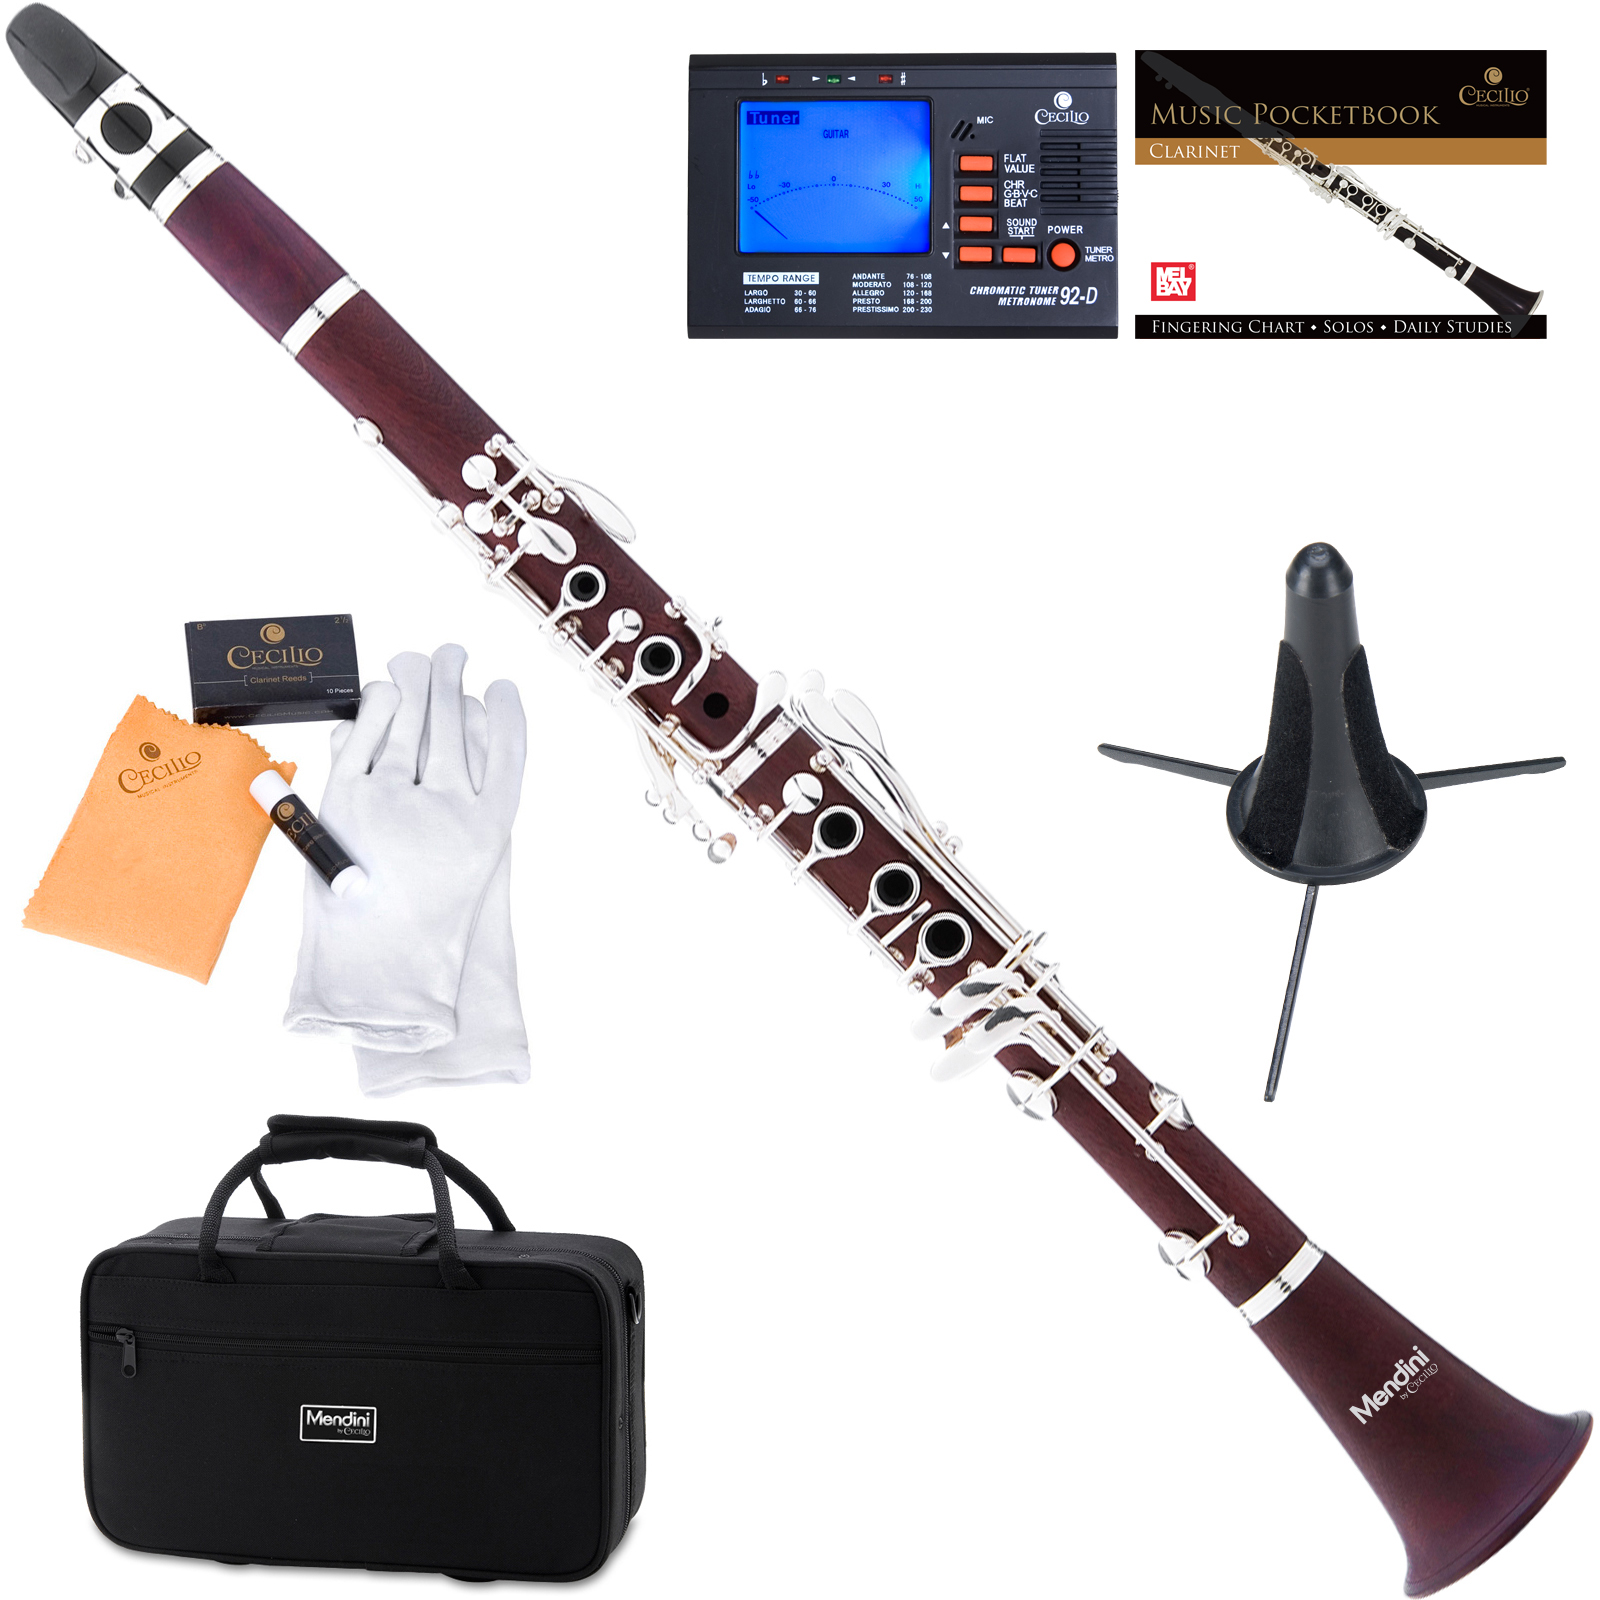 Mendini by Cecilio MCT-30 Rosewood Bb Clarinet w/Silver Plated Keys, Italian Pads, 1 Year Warranty, Stand, Tuner, 10 Reeds, Pocketbook, Mouthpiece, Case, B Flat